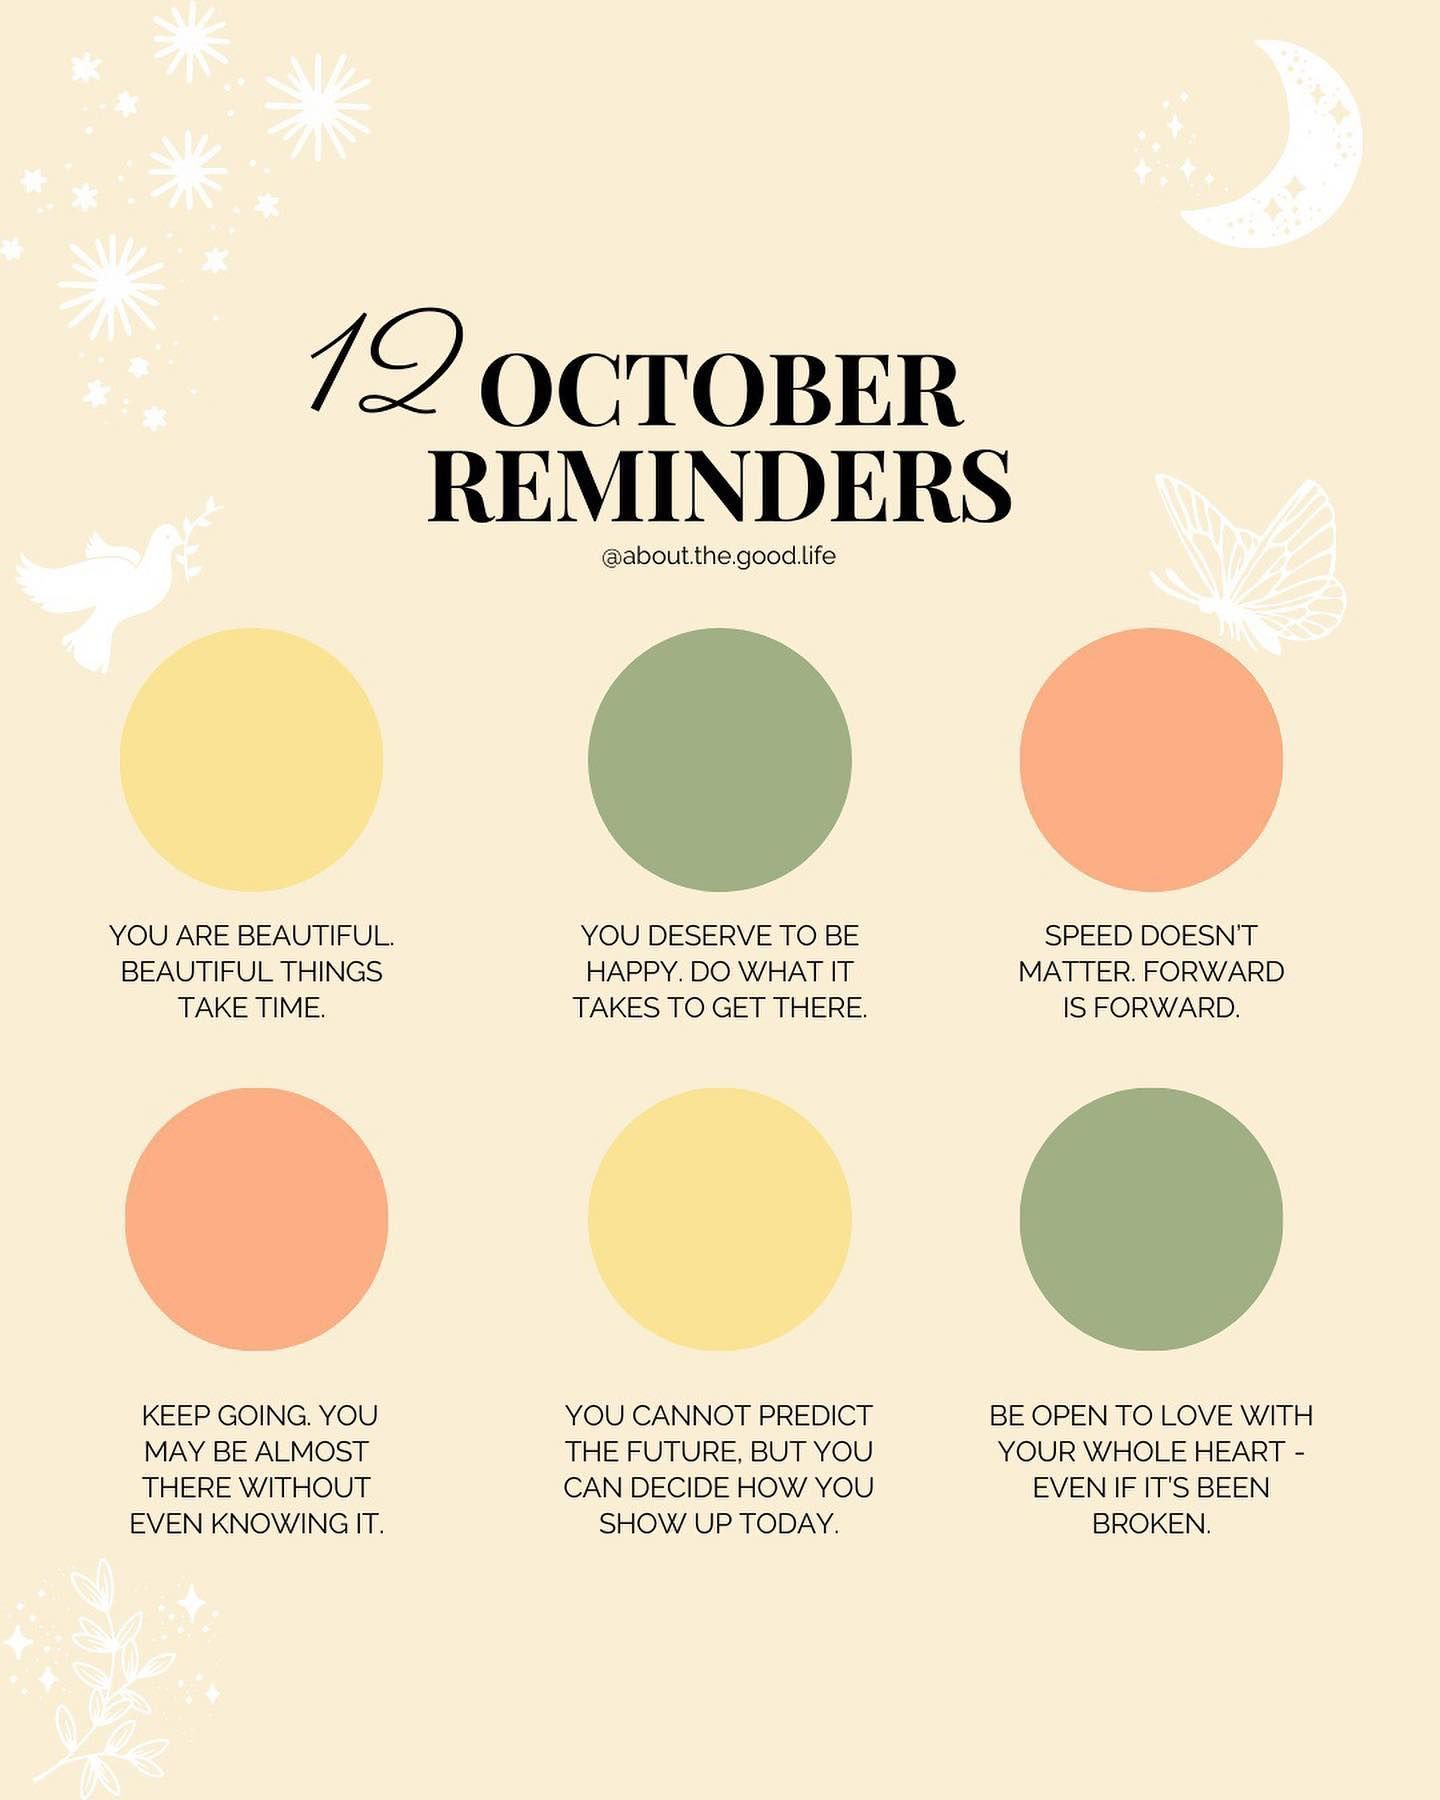 May October Be The Month You Begin To Harvest The Gifts Of Your Becoming May You Stay Warm Colourful And Nourished T